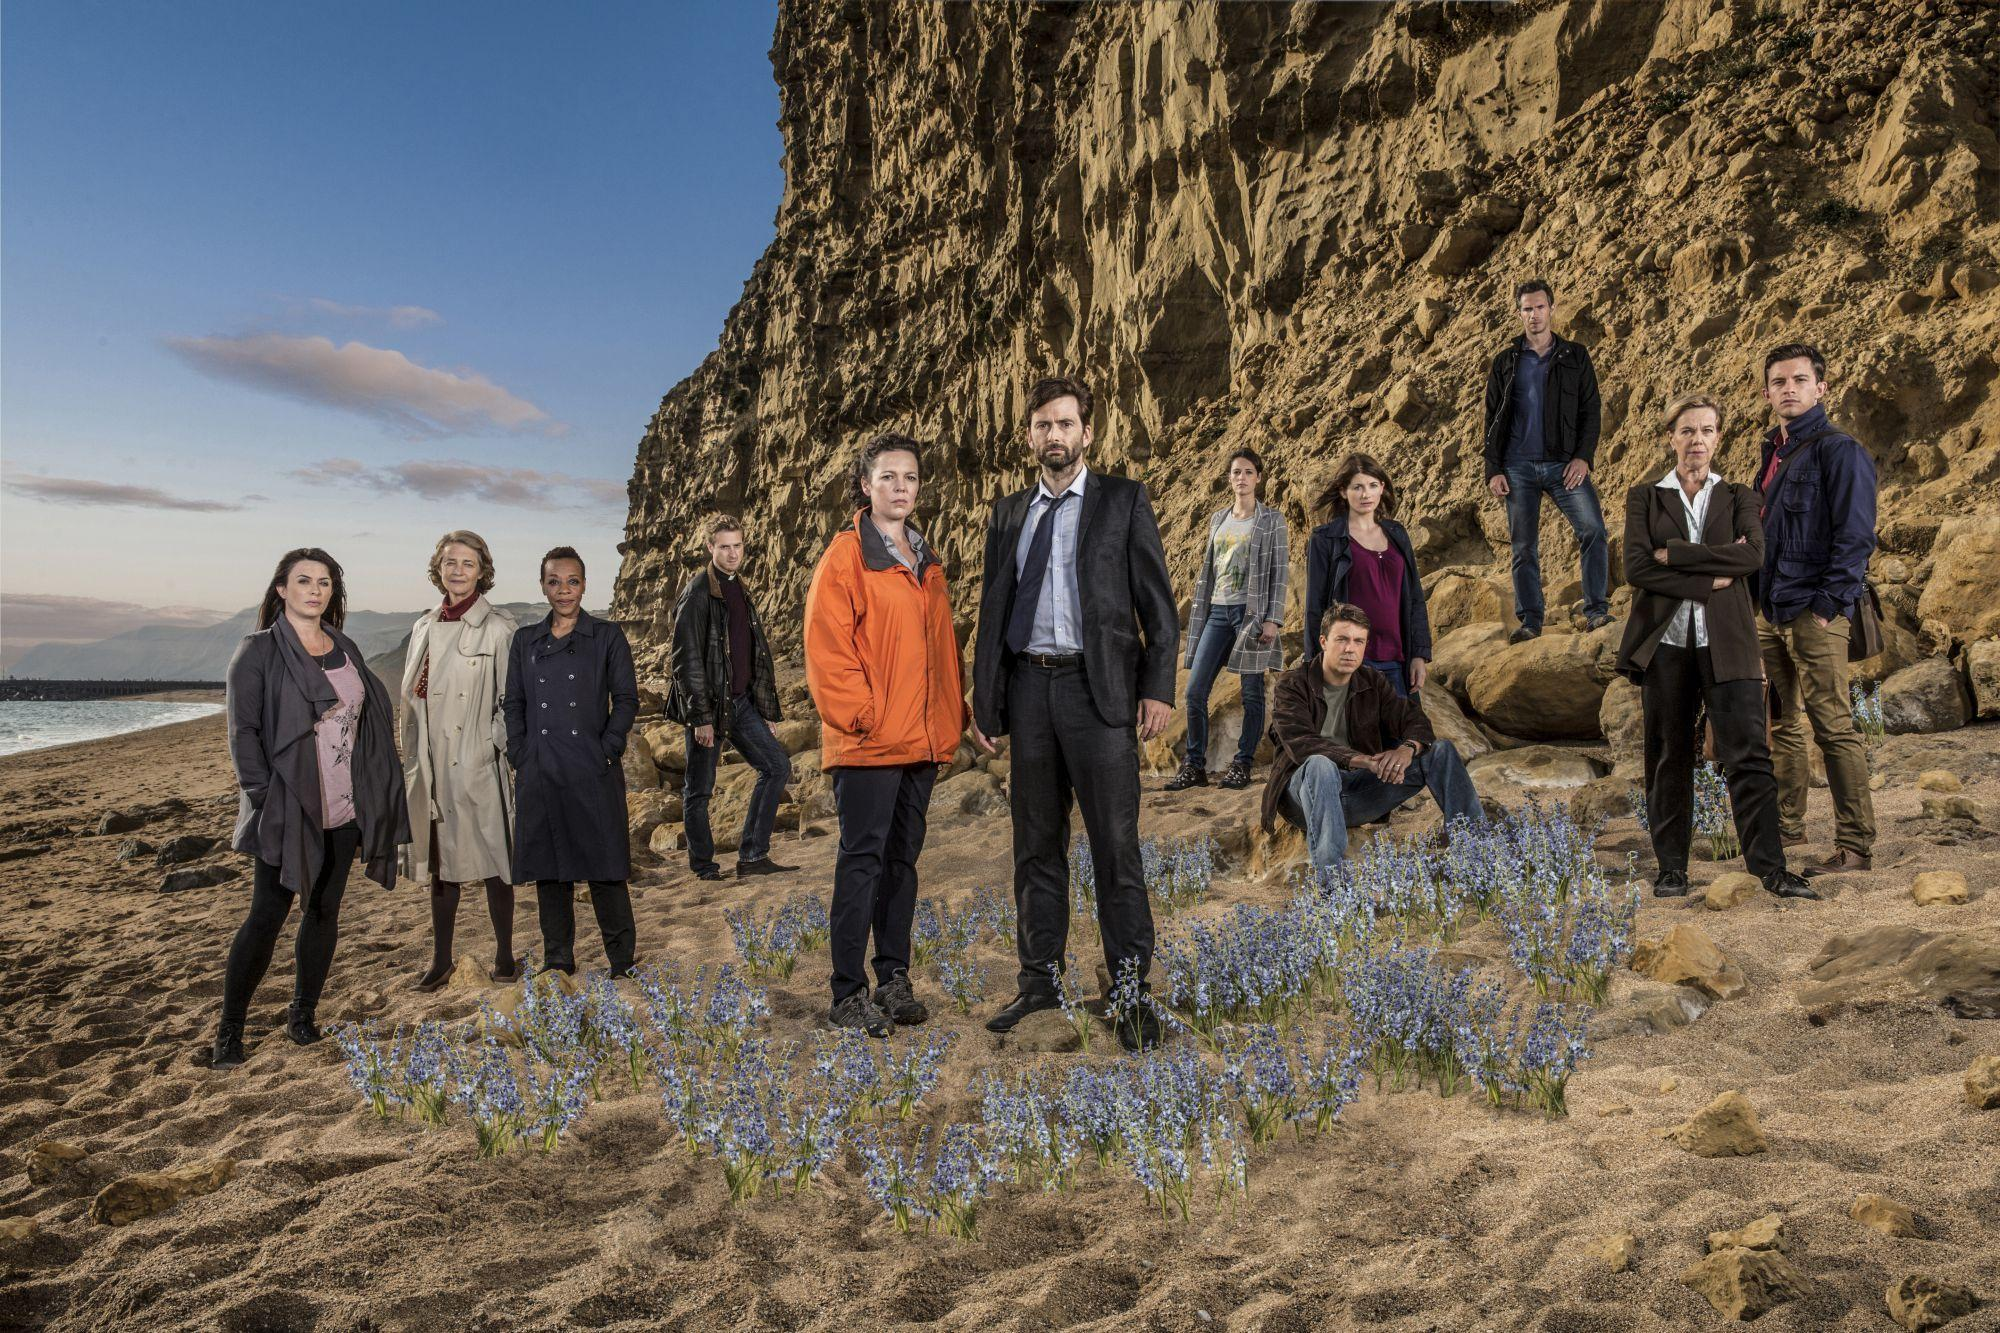 WATCH: Trailer for second episode of Broadchurch released